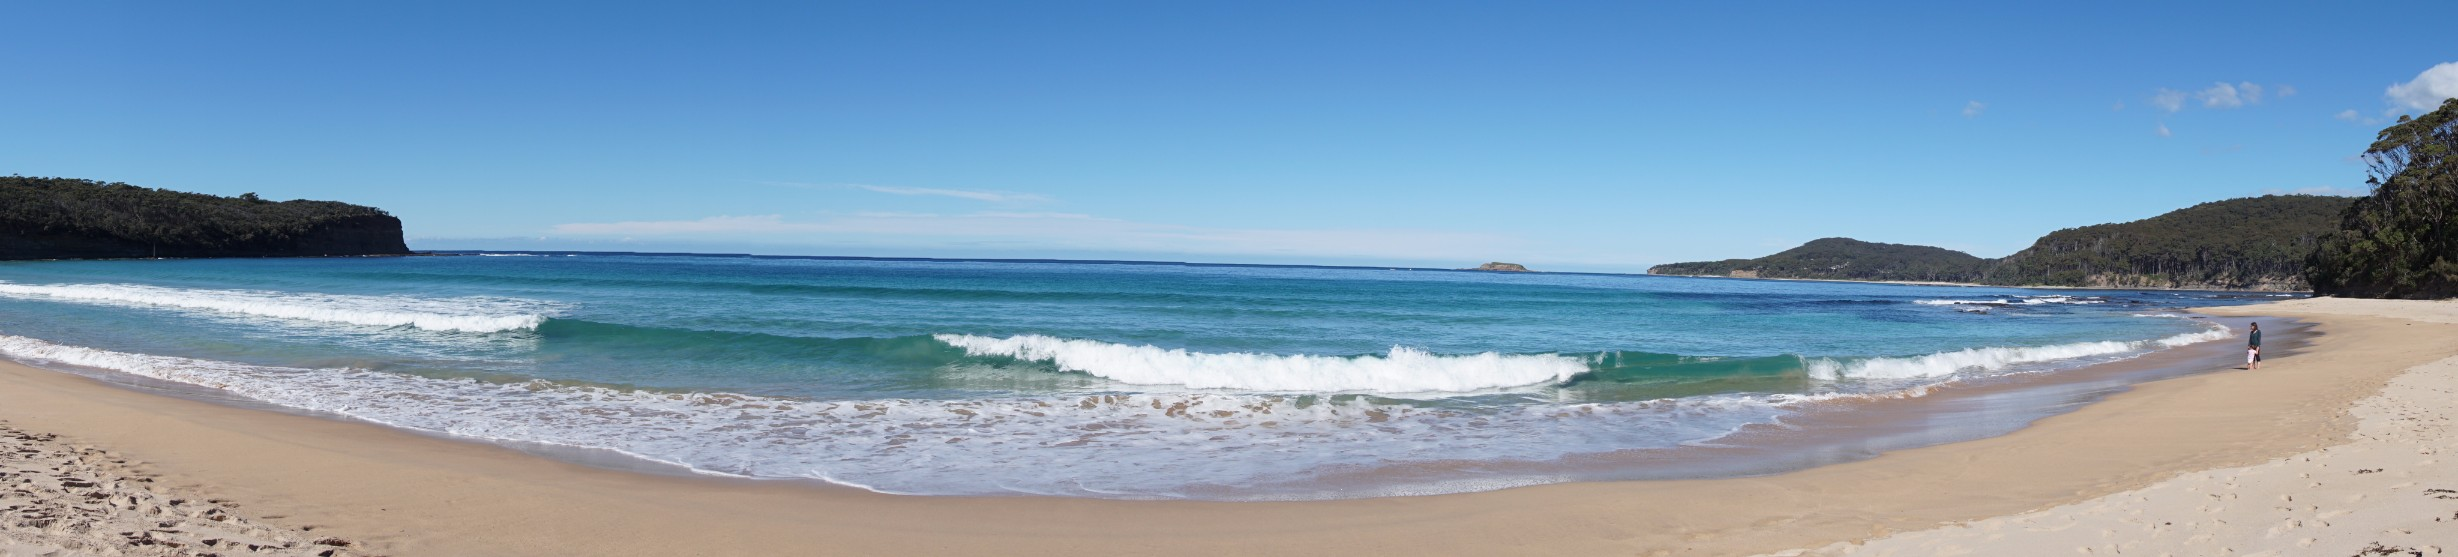 The Beaches Of The South Coast Of New South Wales post image